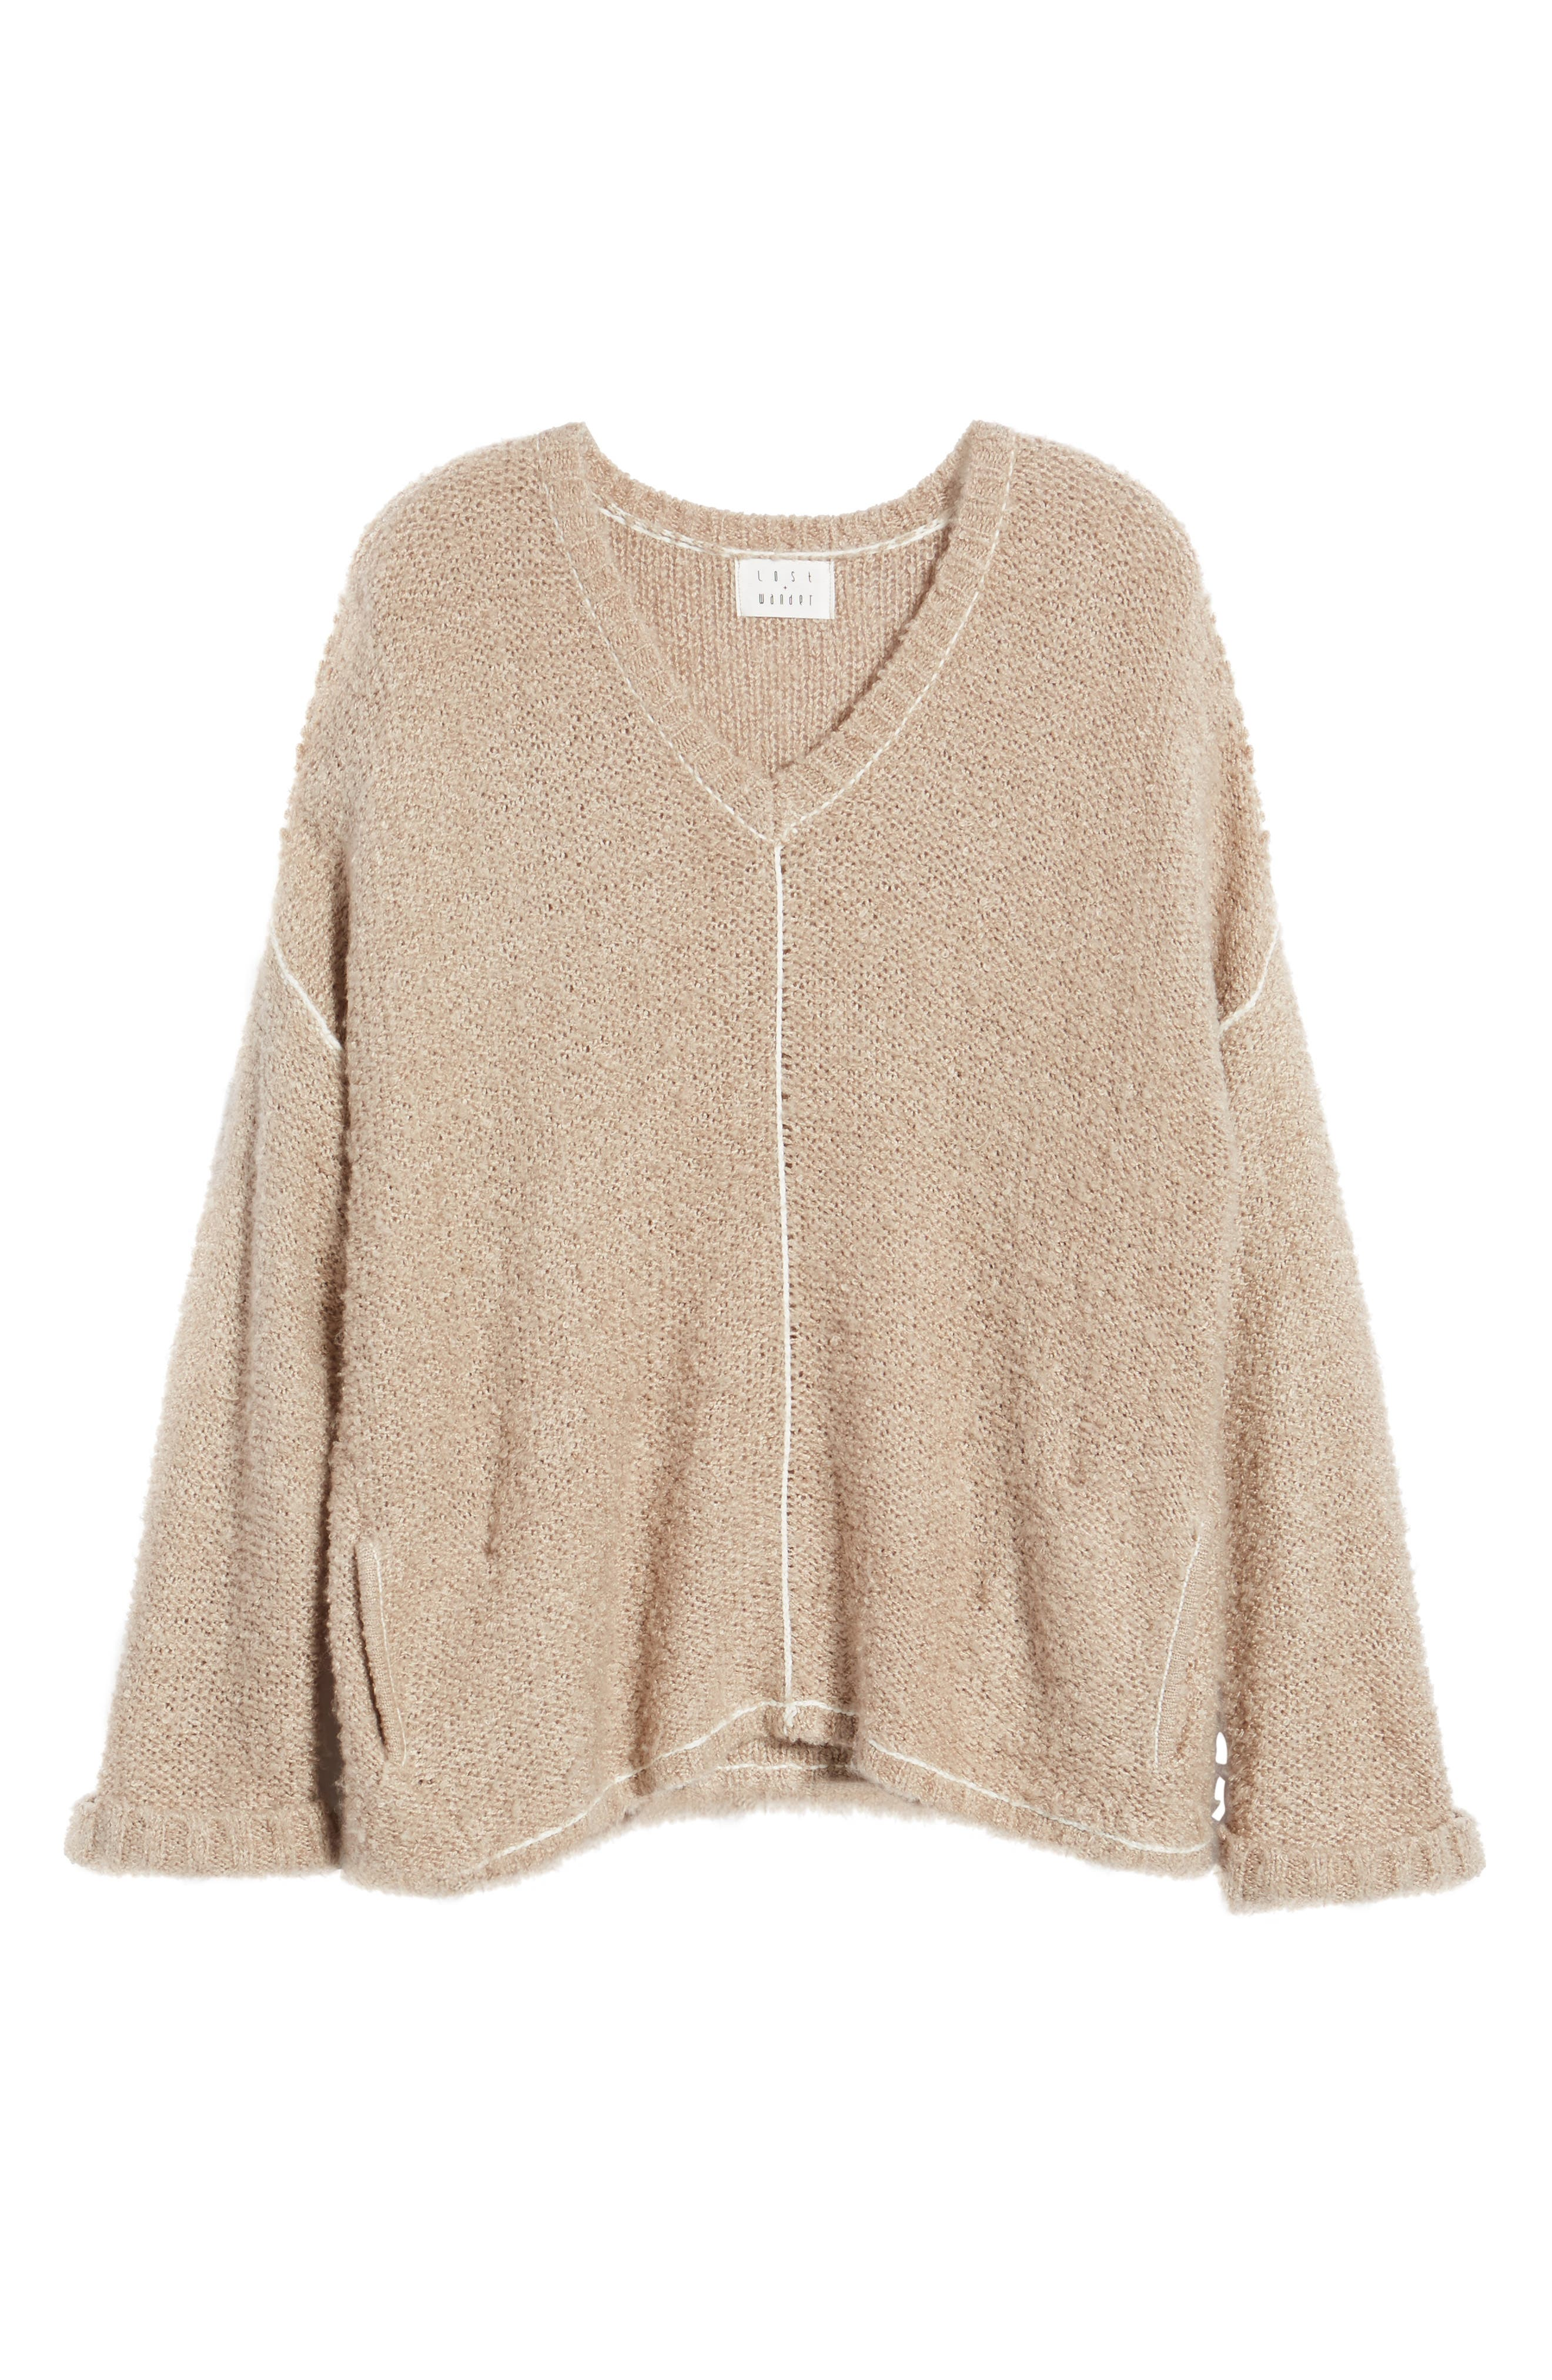 Voyage Knit Sweater,                             Alternate thumbnail 6, color,                             253